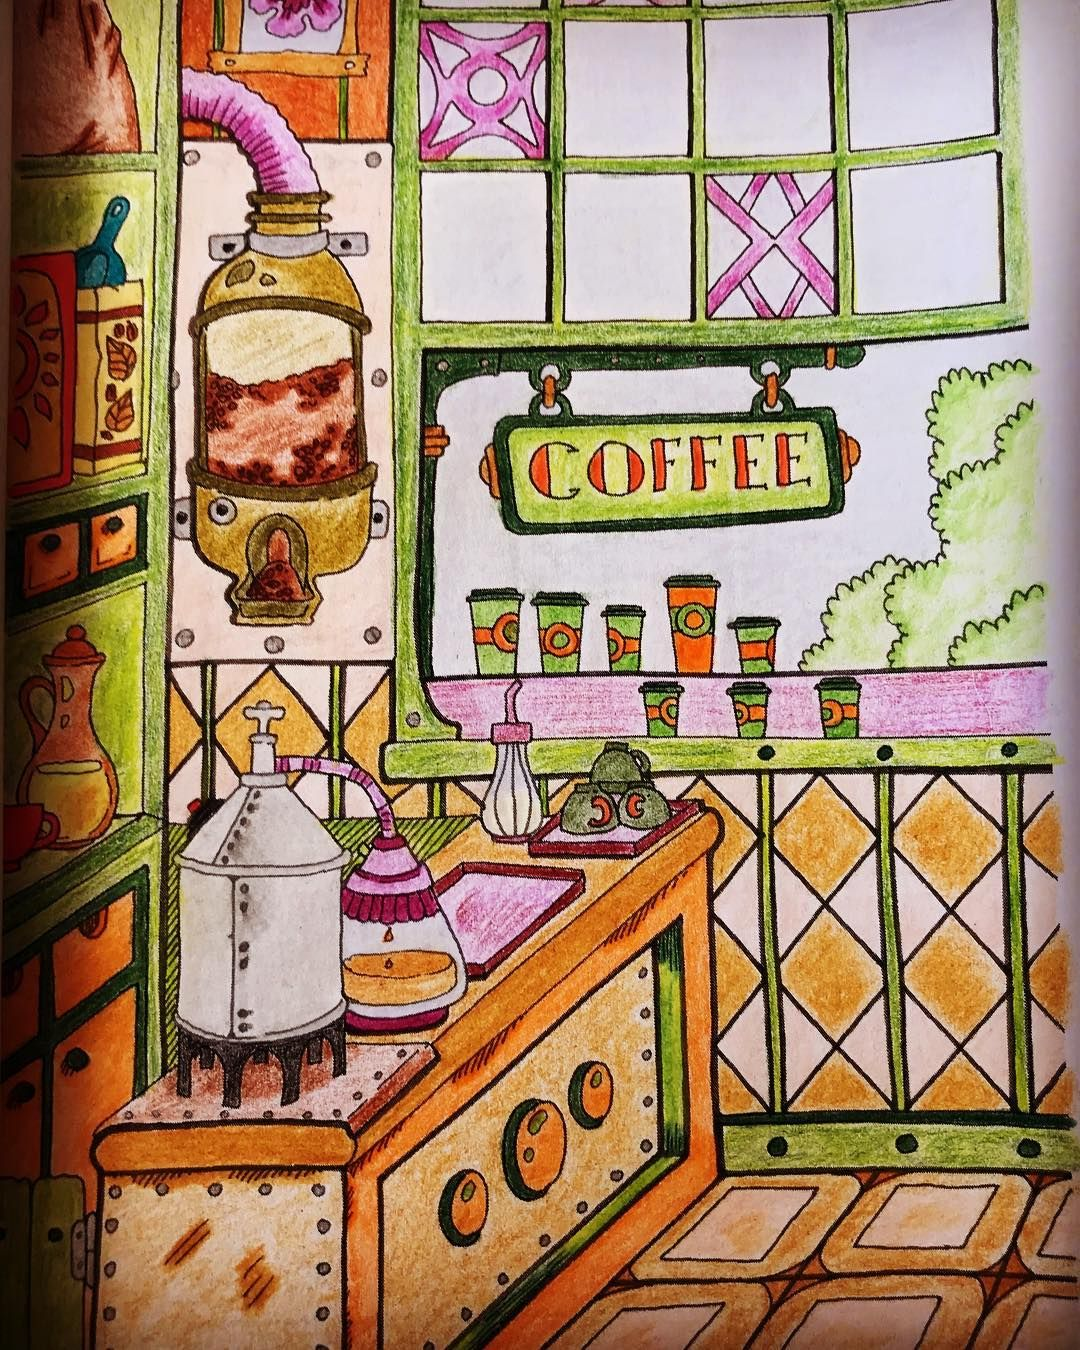 Coffee Shop Ilustracion Illustration Coloring Colouring Arttherapy Art Arte Arts Painting Color Penc Art For Kids Coloring Books Coloring Pages